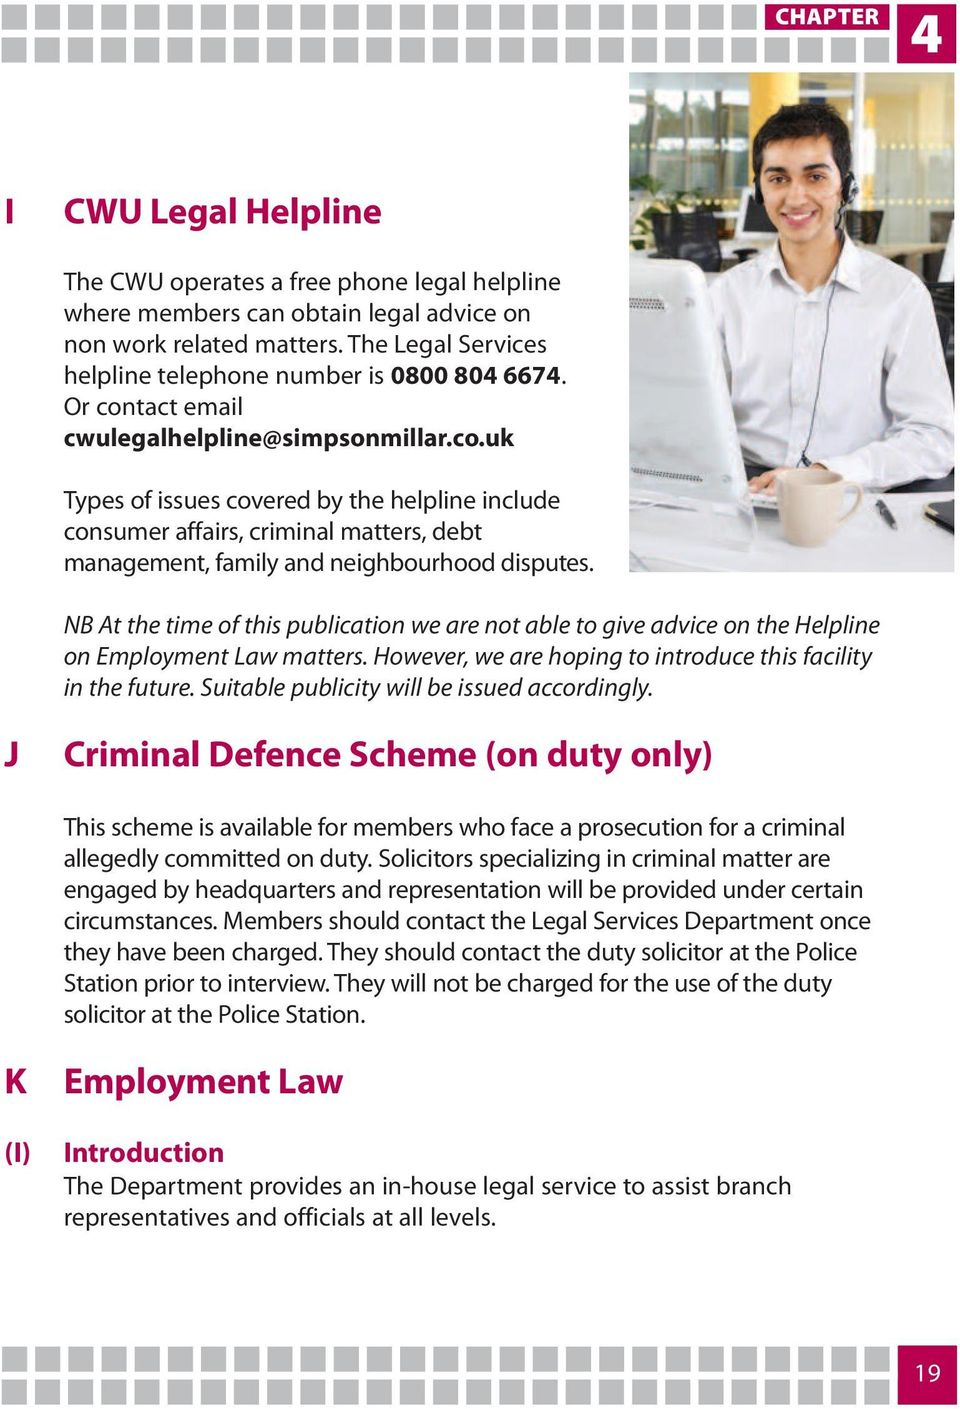 tact email cwulegalhelpline@simpsonmillar.co.uk Types of issues covered by the helpline include consumer affairs, criminal matters, debt management, family and neighbourhood disputes.